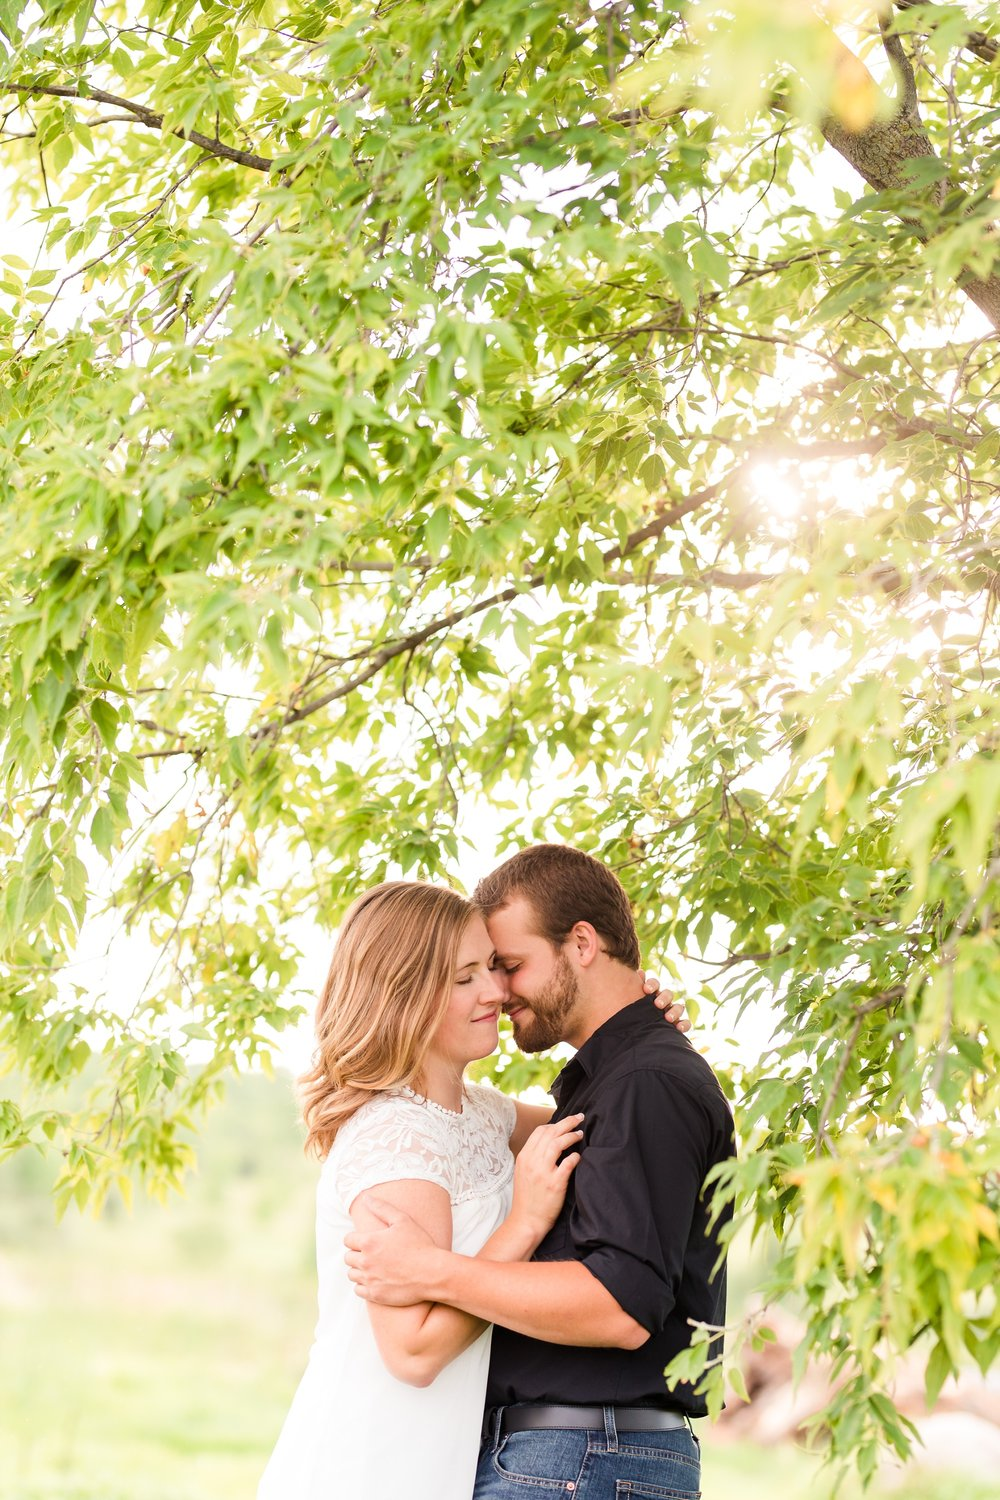 AmberLangerudPhotography_Countryside Engagement Session in Minnesota_3096.jpg